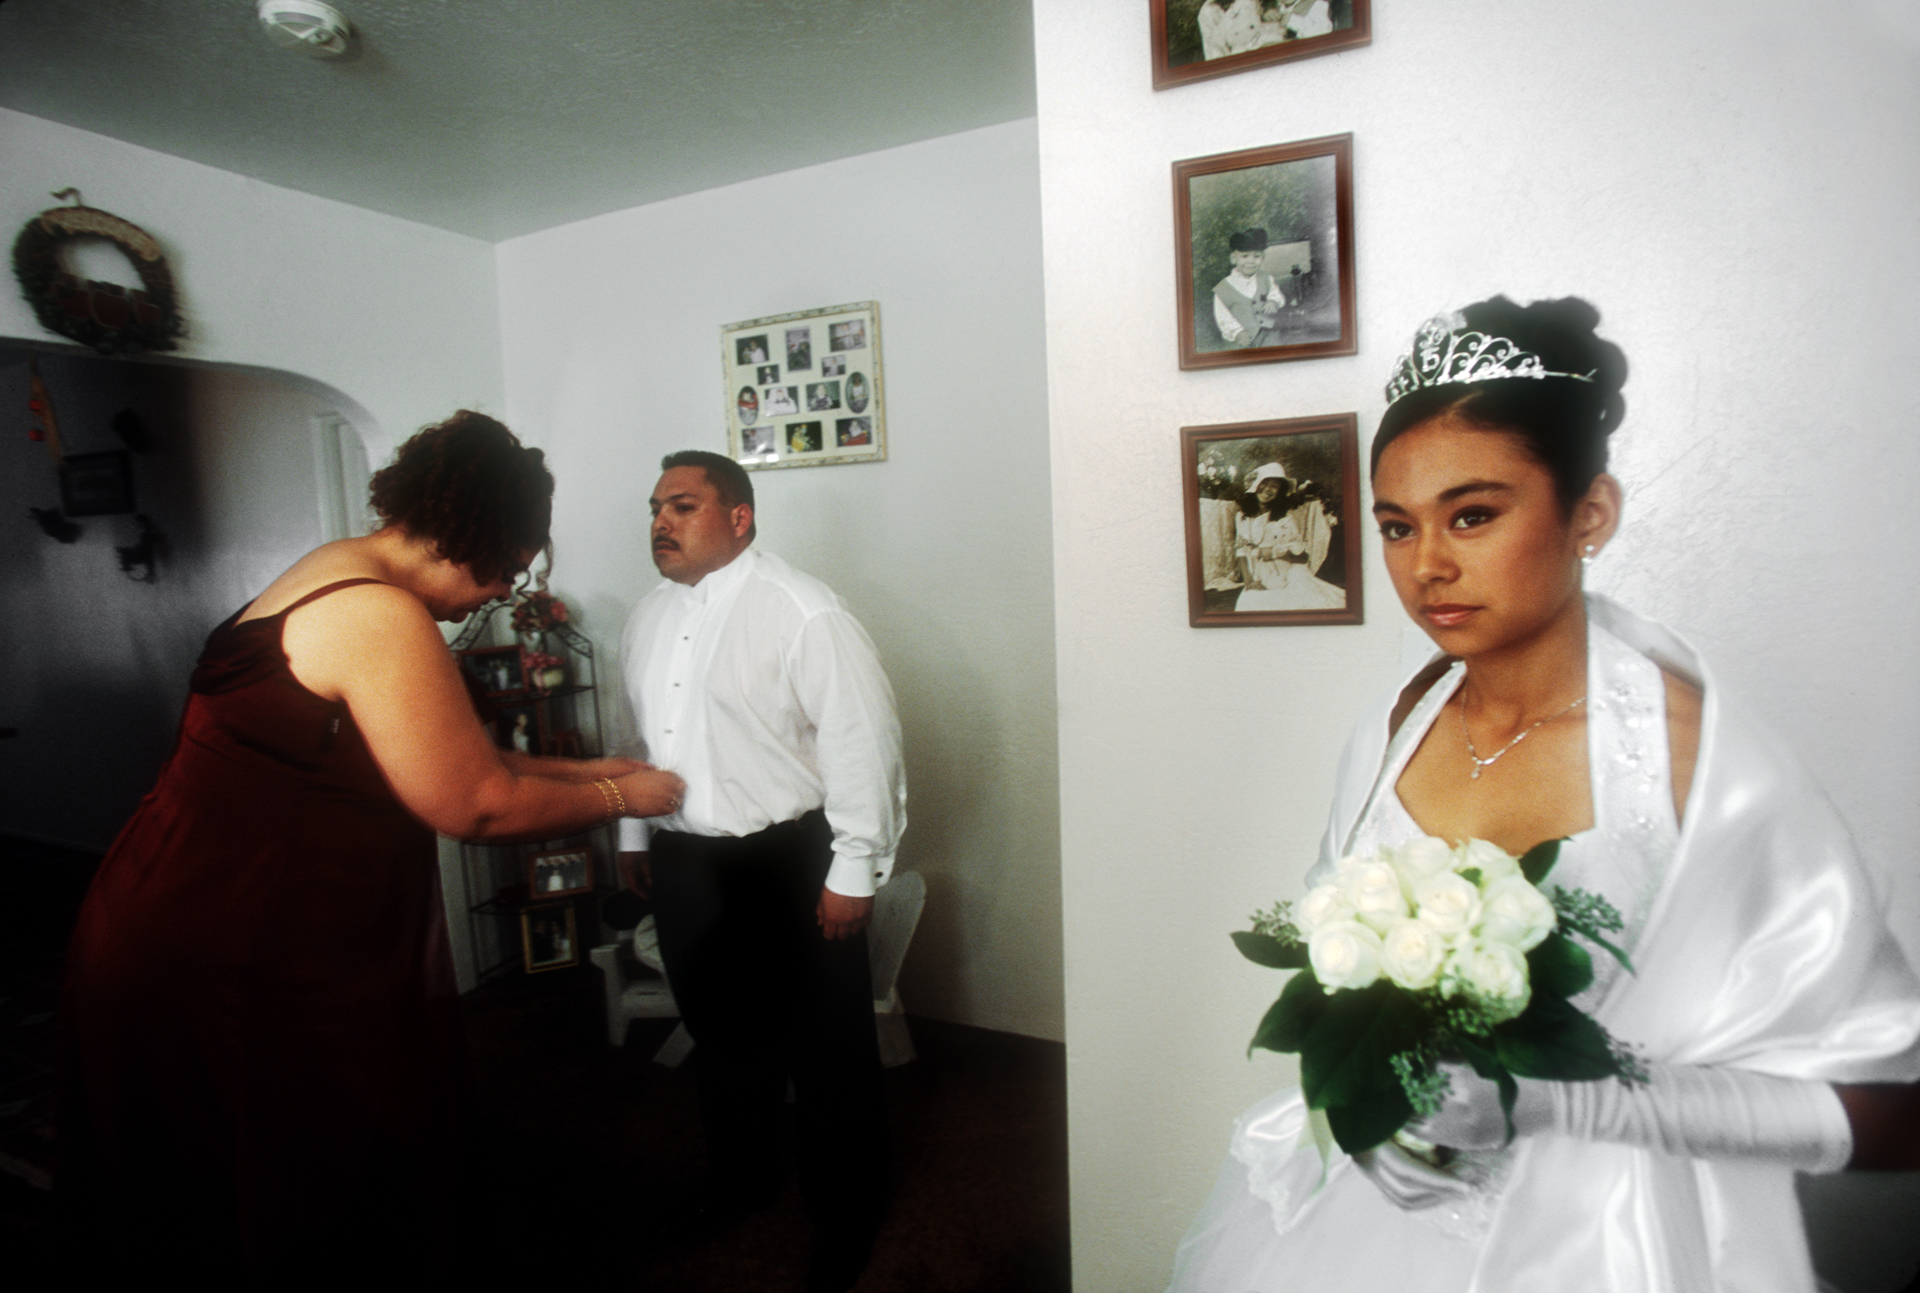 This teen gets ready along with her mom and step dad for her quinceañera, an elaborate Hispanic rite of passage for Latina girls turning 15 that can rival the pomp and expense of wedding celebrations.  Brawley